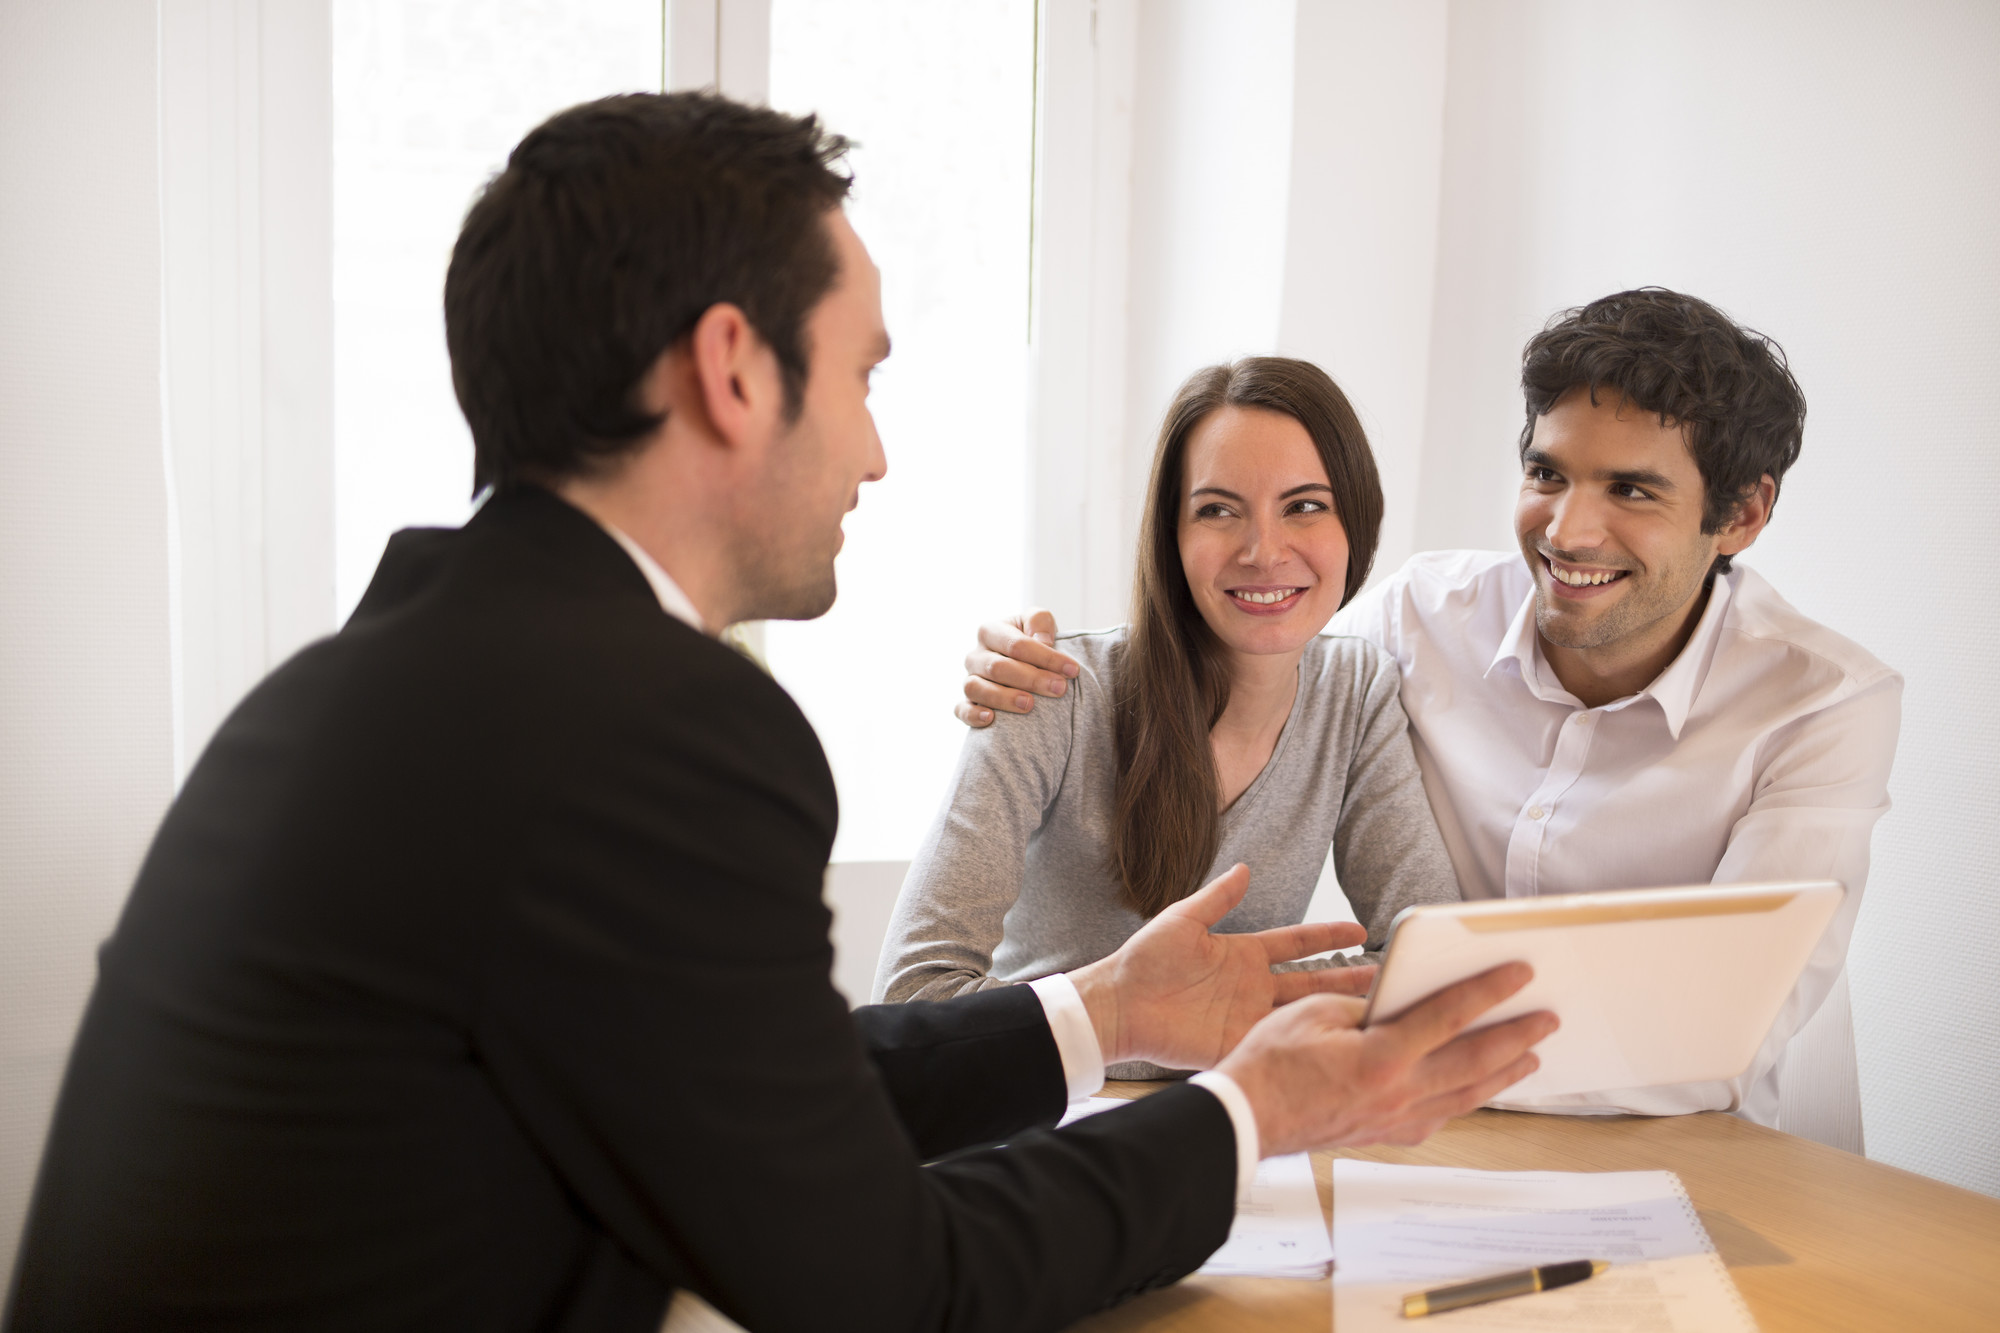 buyers discussing real estate information